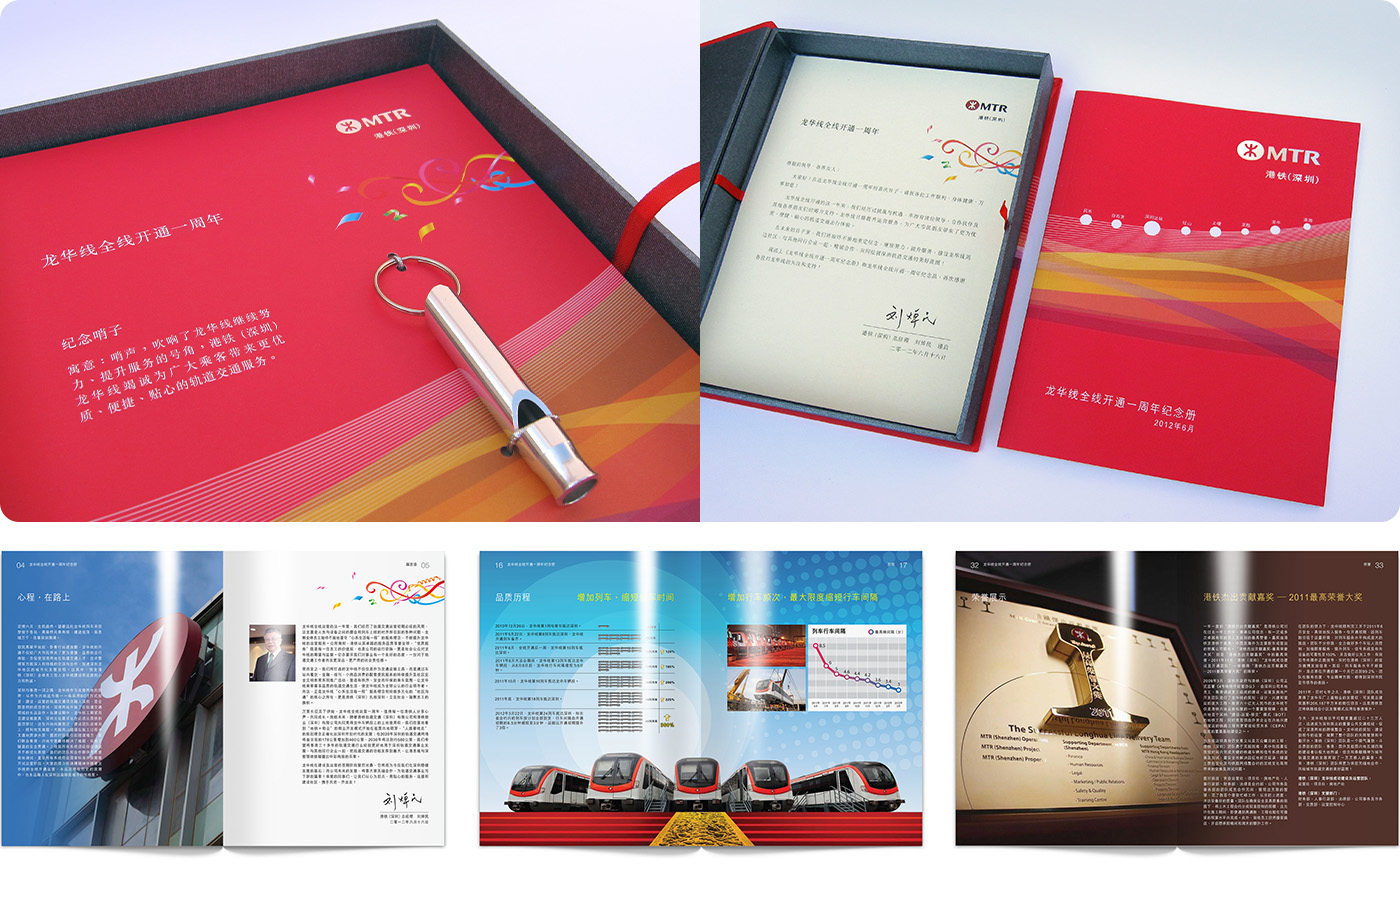 MTR Corporation (Shenzhen) Limited-Longhua line anniversary booklet design